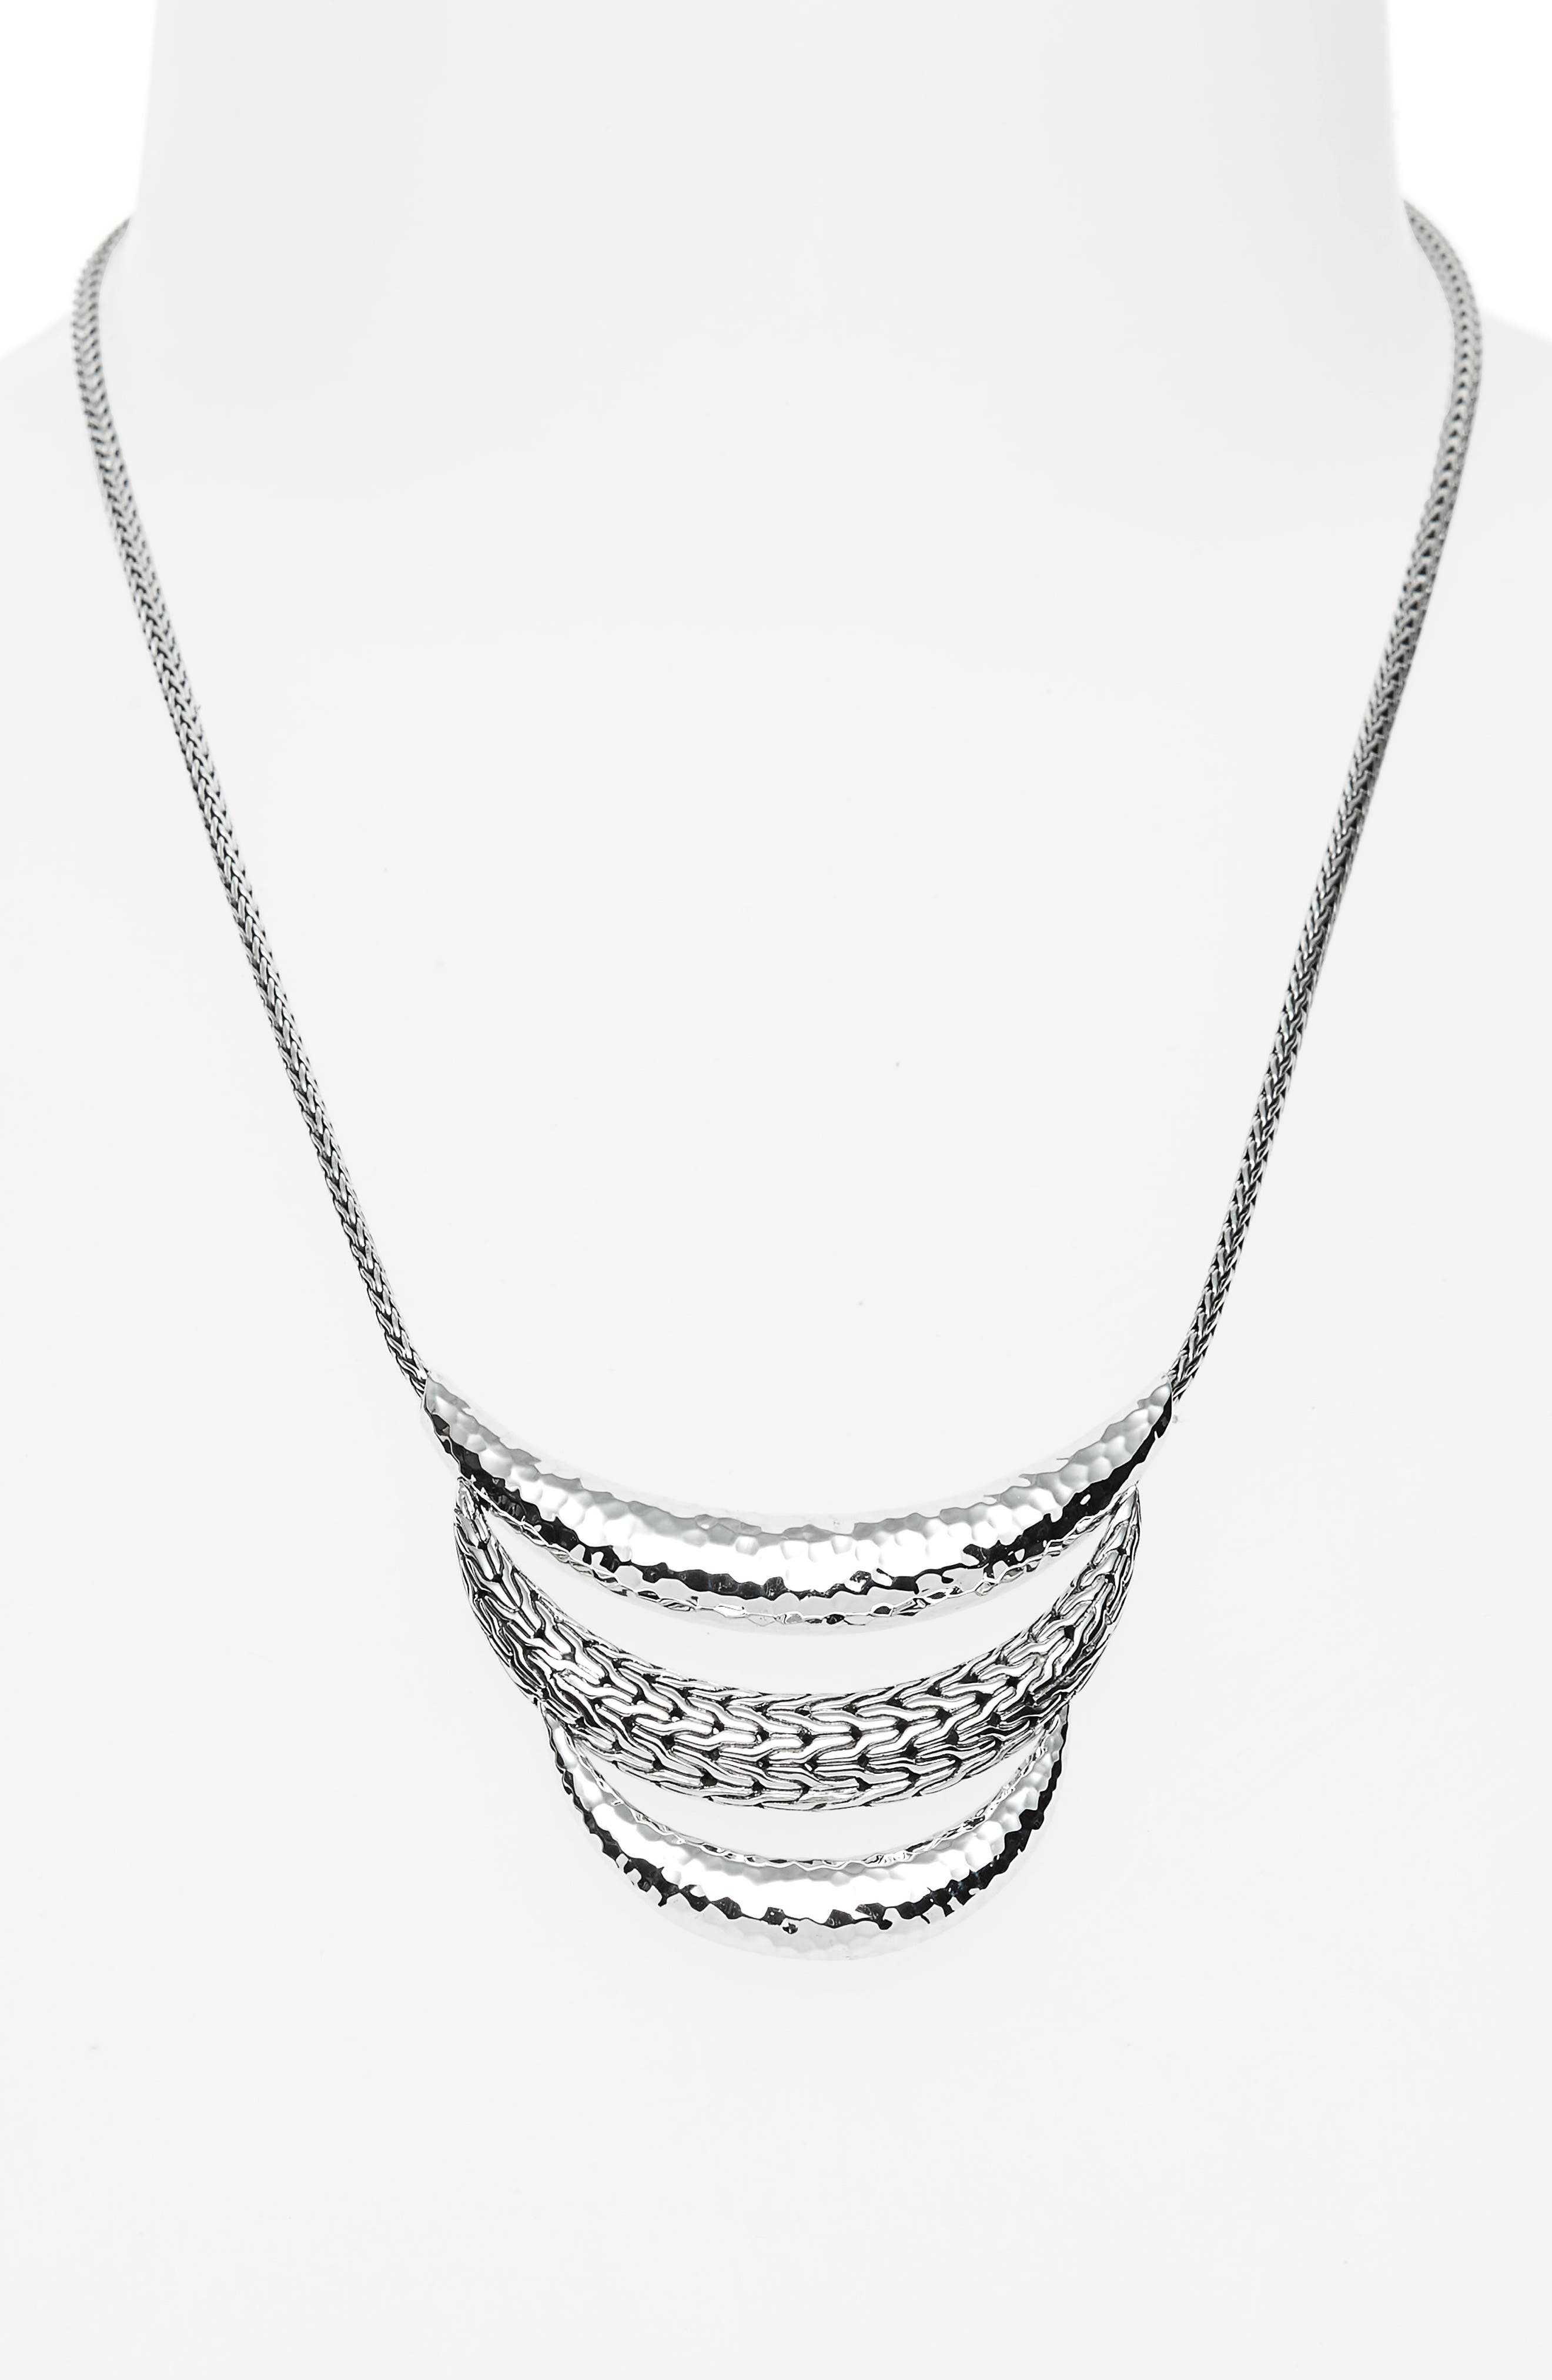 Classic Chain Hammered Silver Necklace,                             Alternate thumbnail 2, color,                             Silver